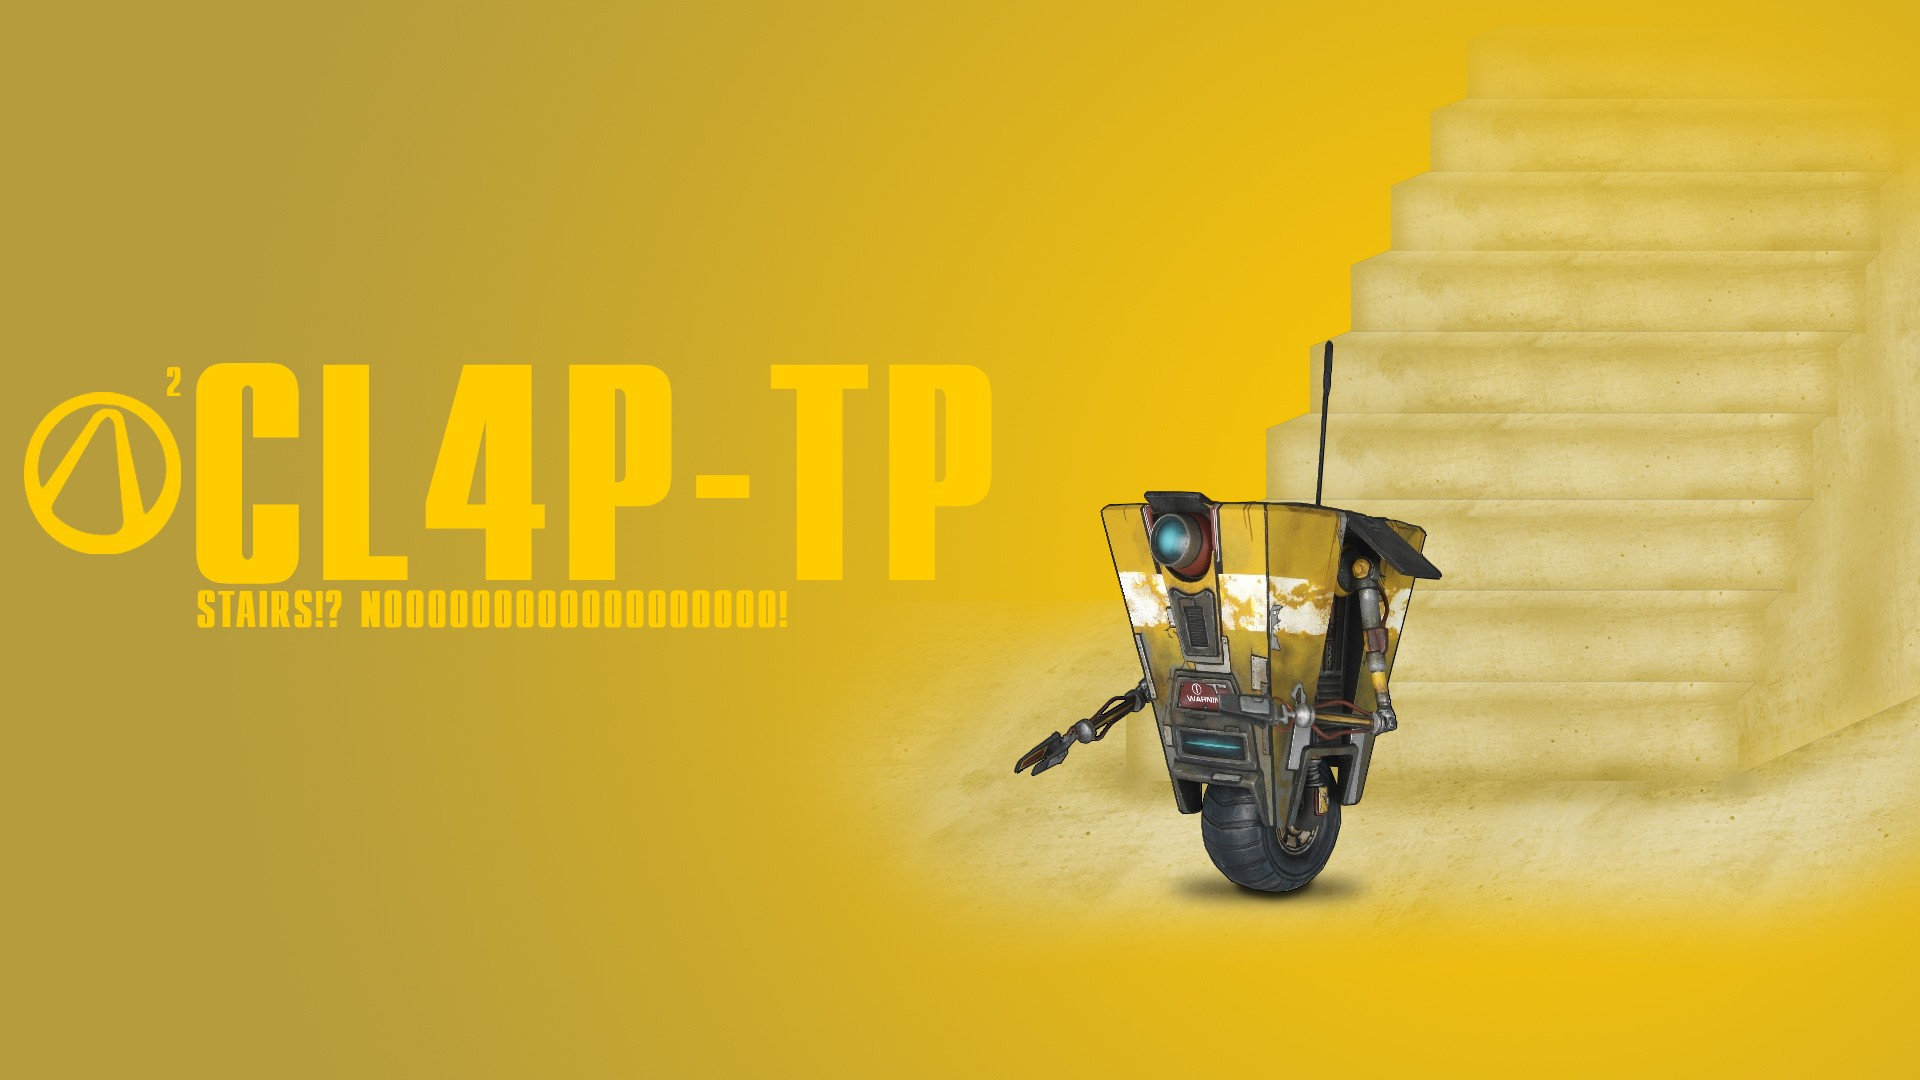 Claptrap Wallpaper Illustrazion 1920x1080